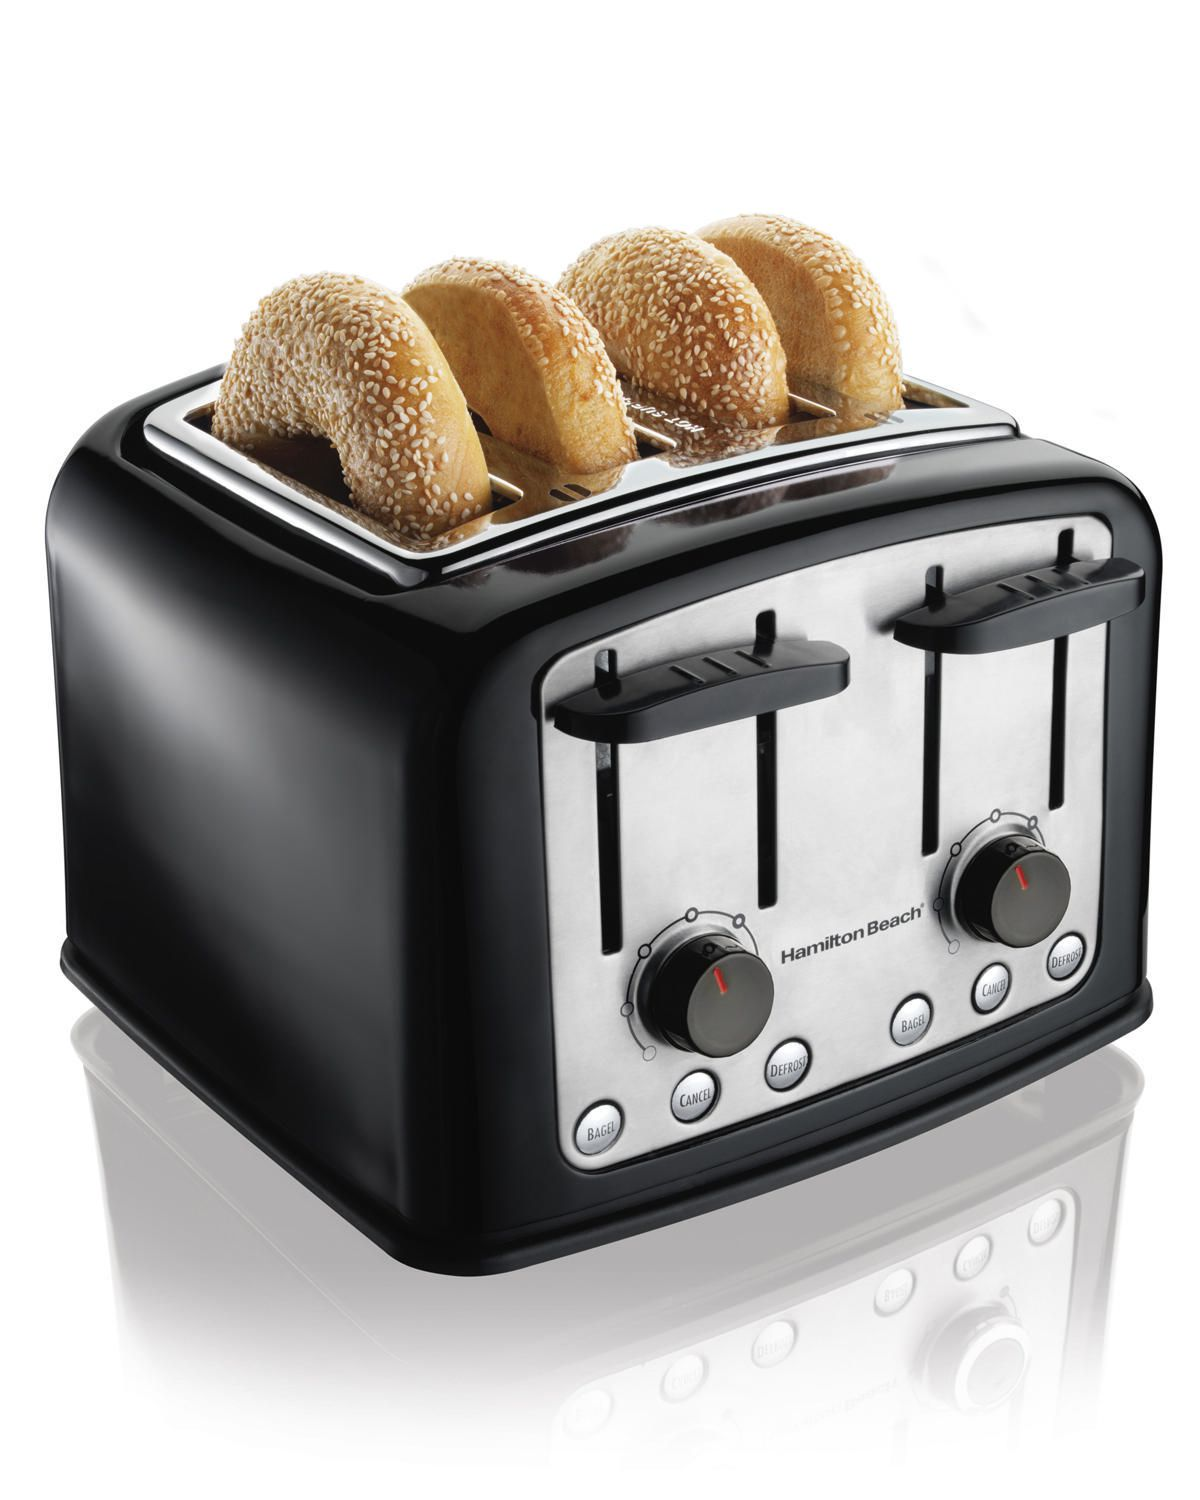 ovens and oster com steel stainless toasters long on slot toaster slice